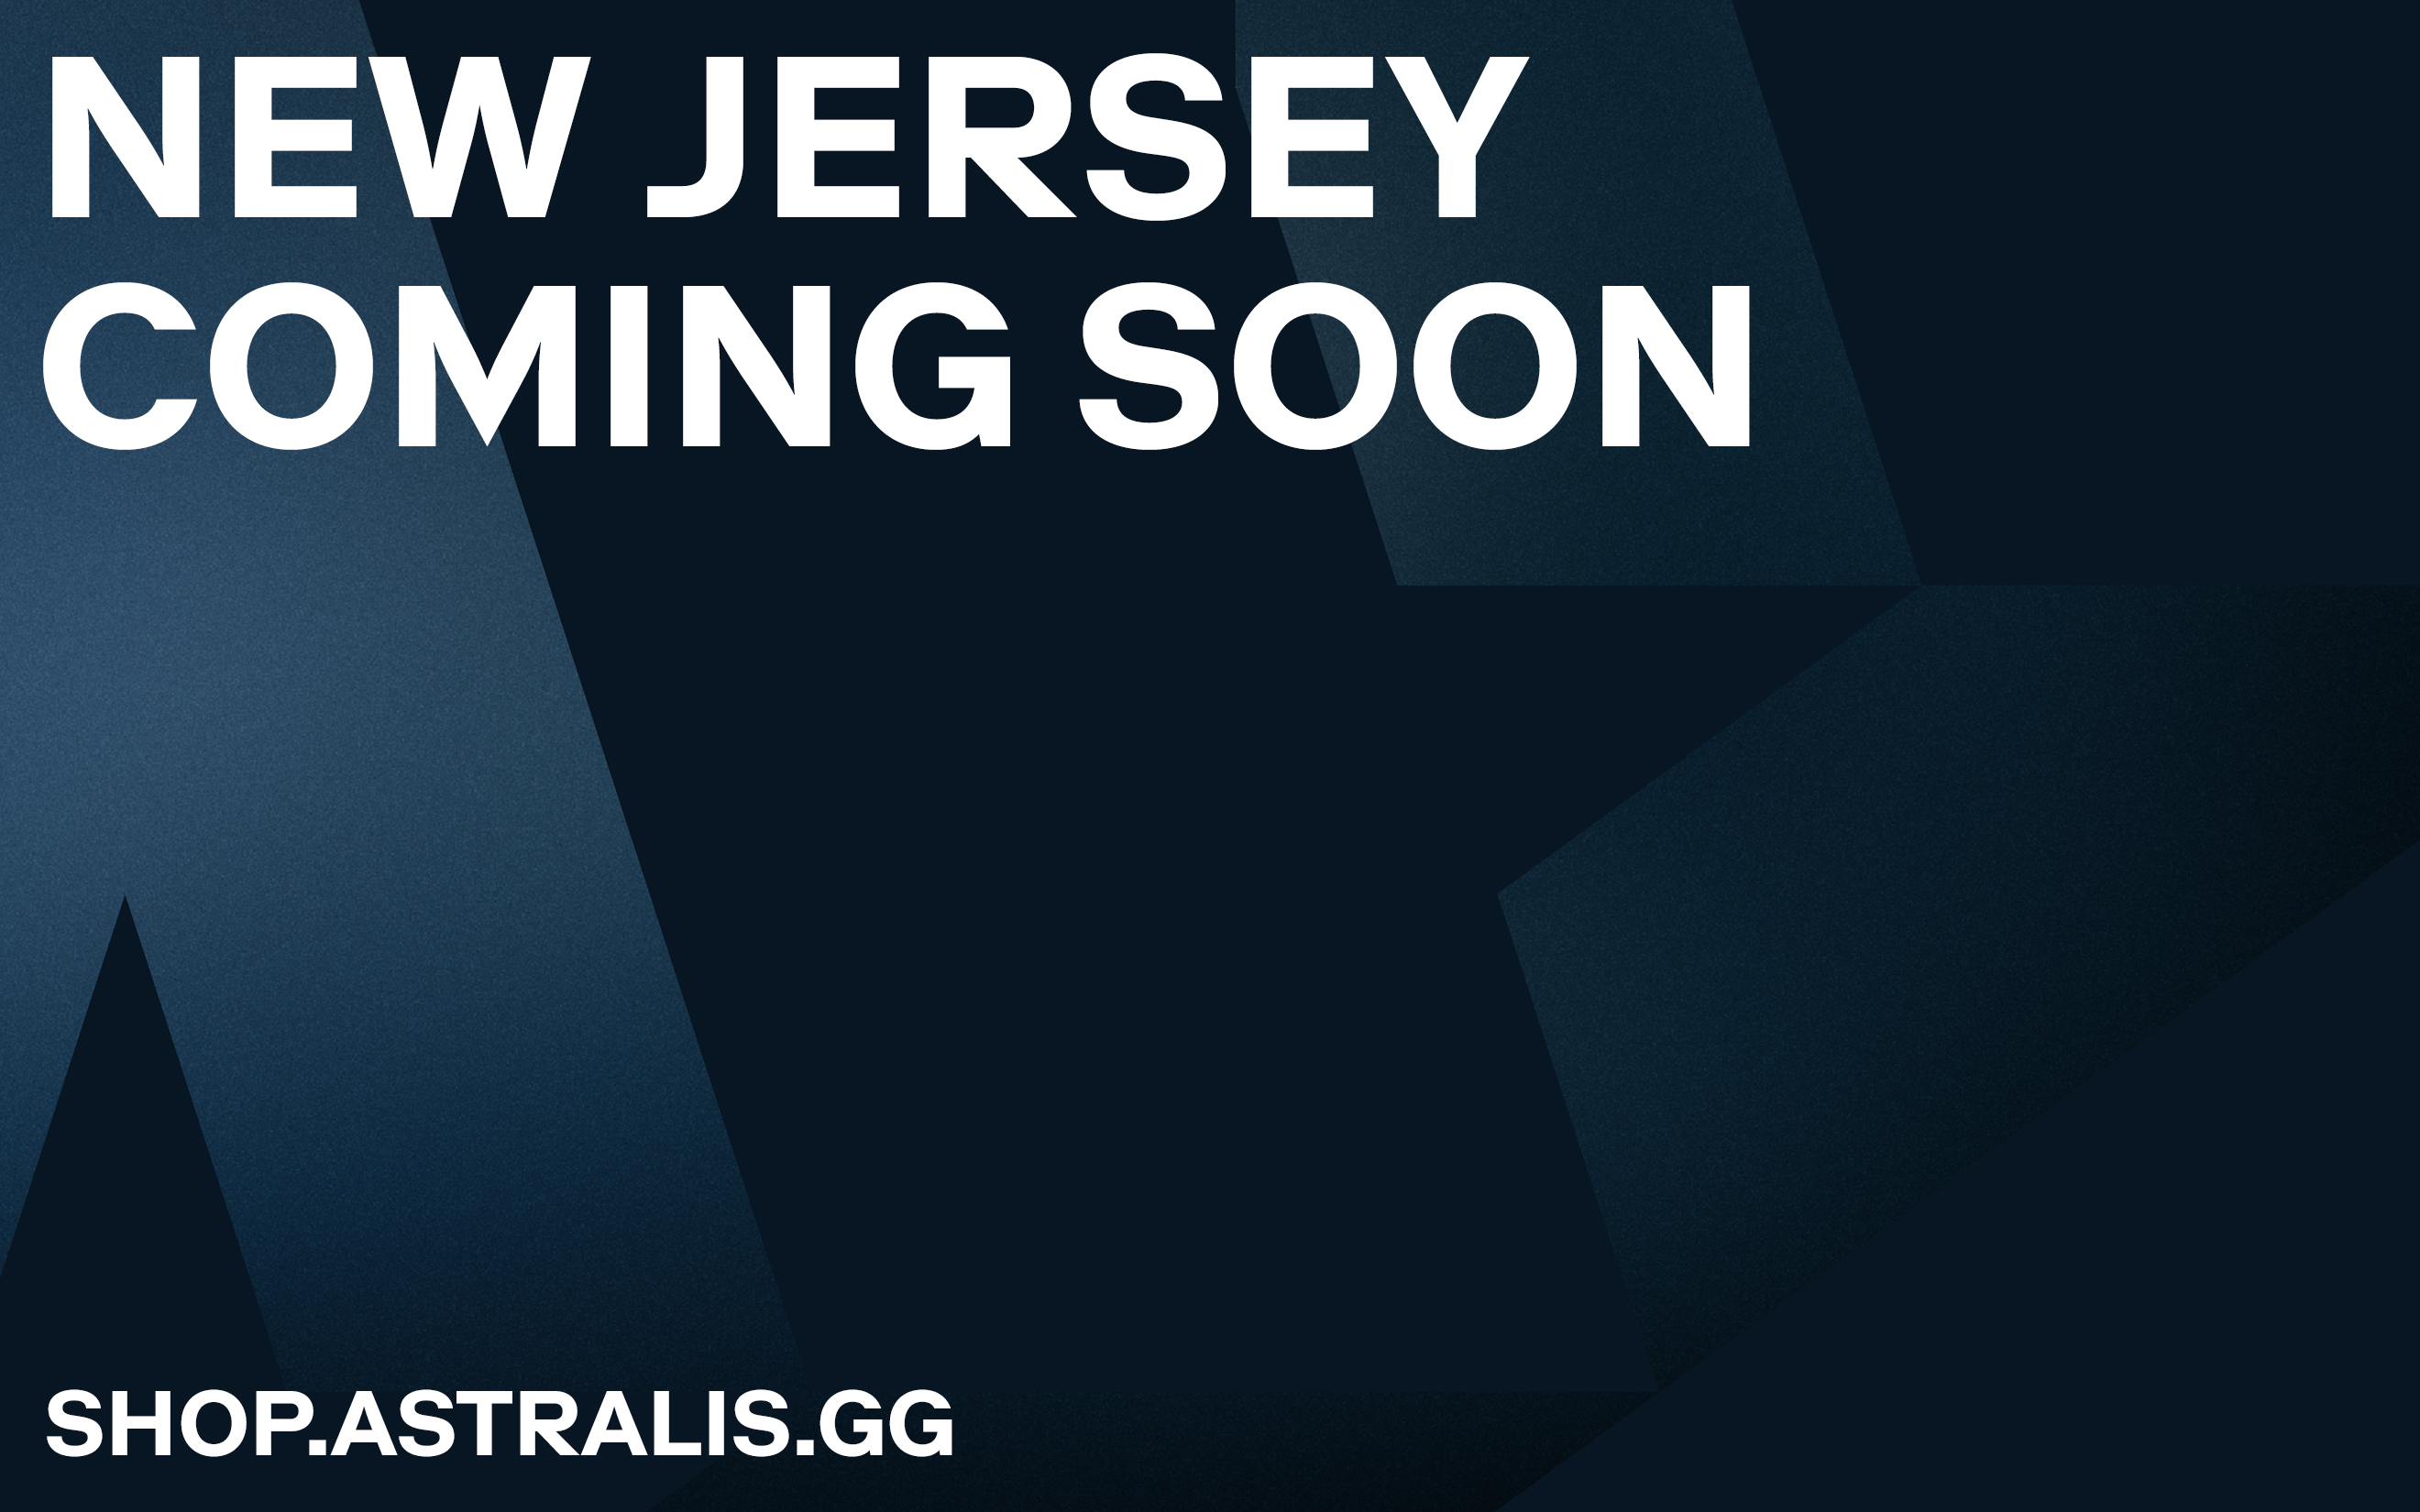 The Official Player Jersey Is Coming